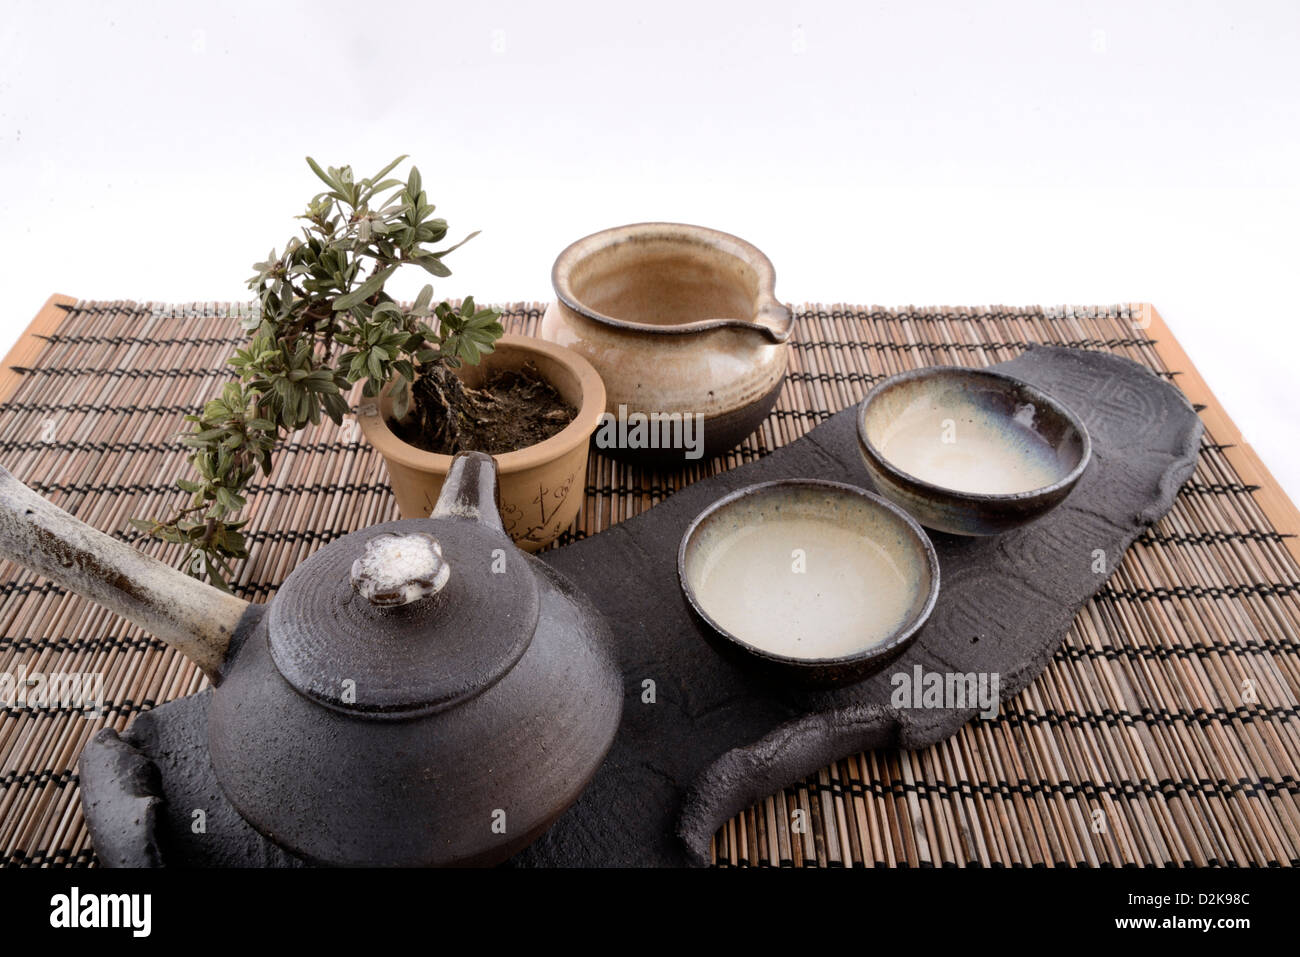 Product image of traditional Chinese tea set on a table setting with white seamless background. & Tea Set Display Stock Photos \u0026 Tea Set Display Stock Images - Alamy